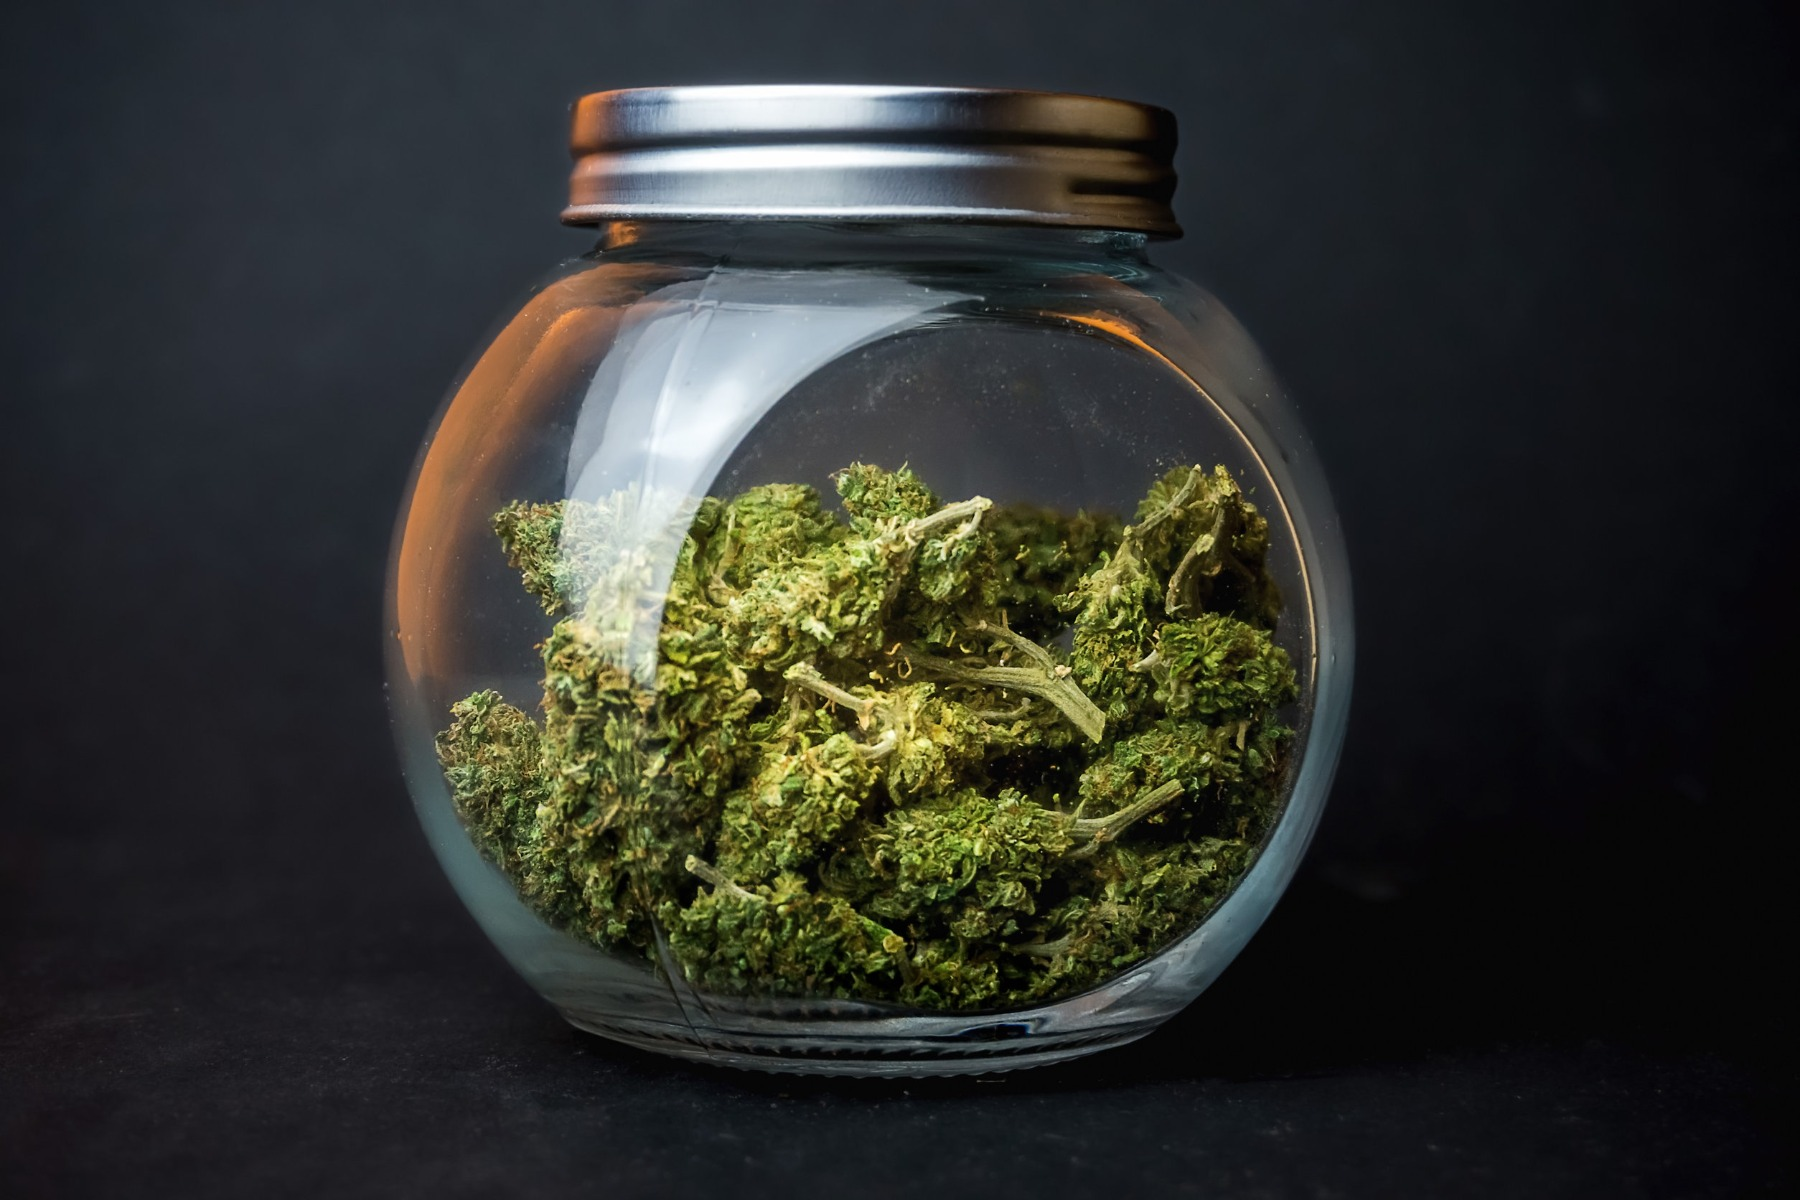 curing weed